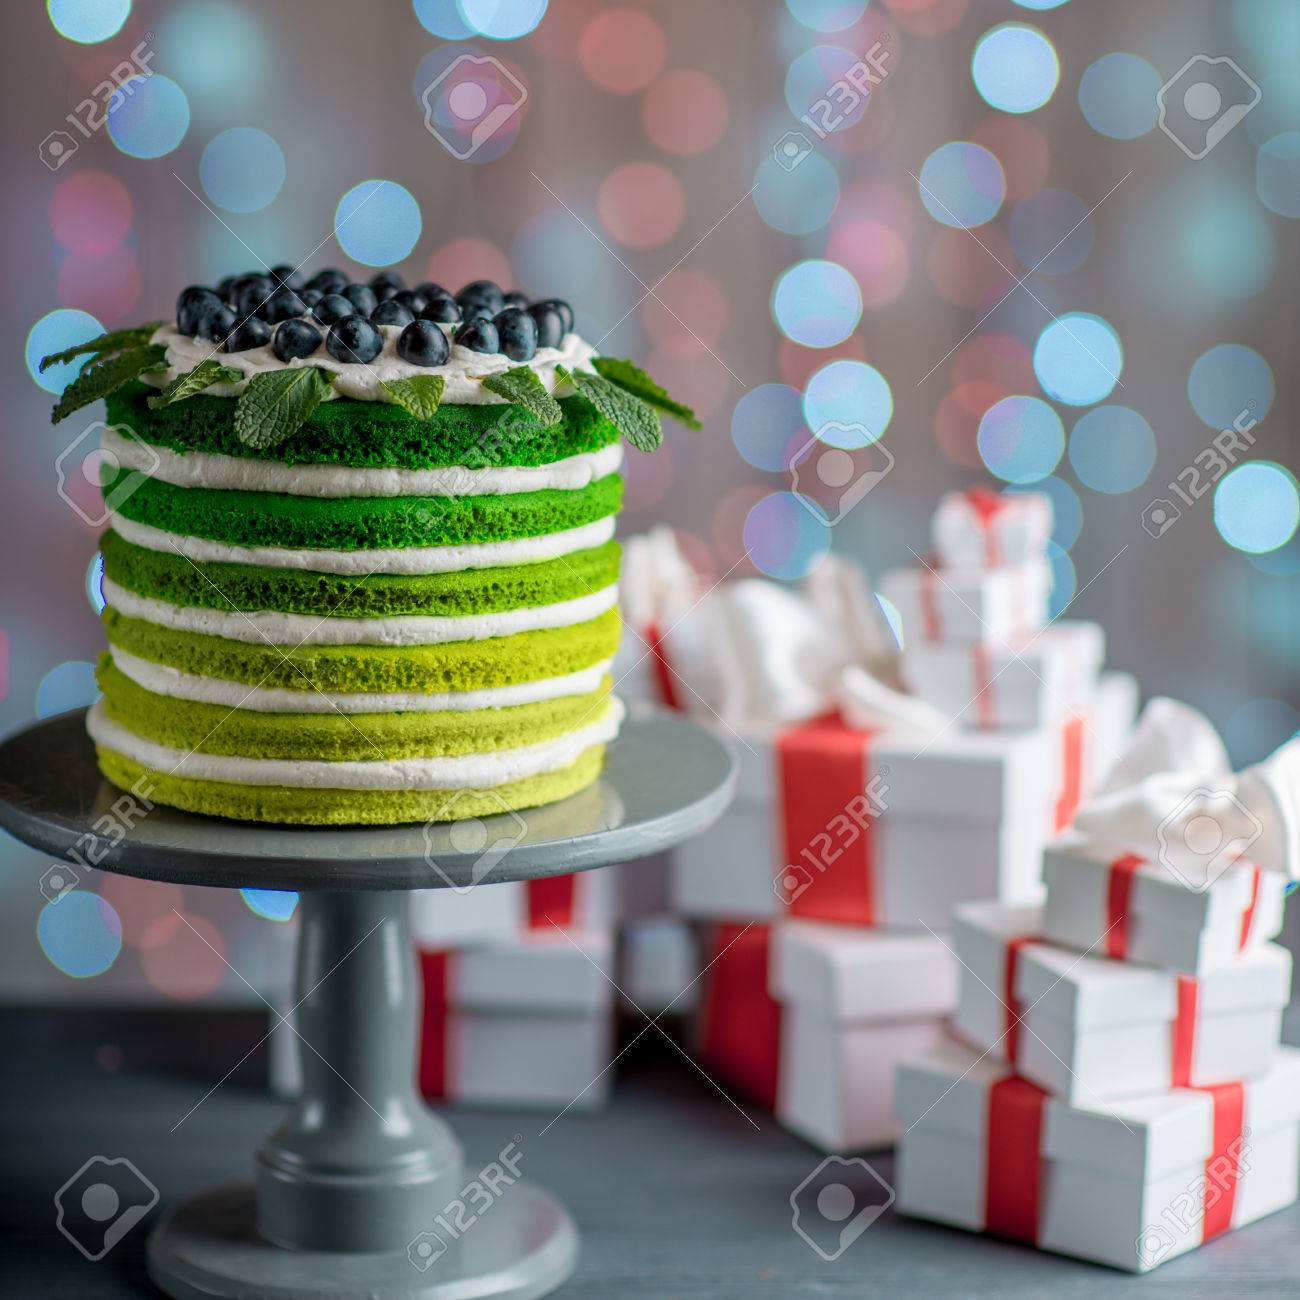 Nice Sponge Happy Birthday Cake With Mascarpone And Grapes On The Stand Gift